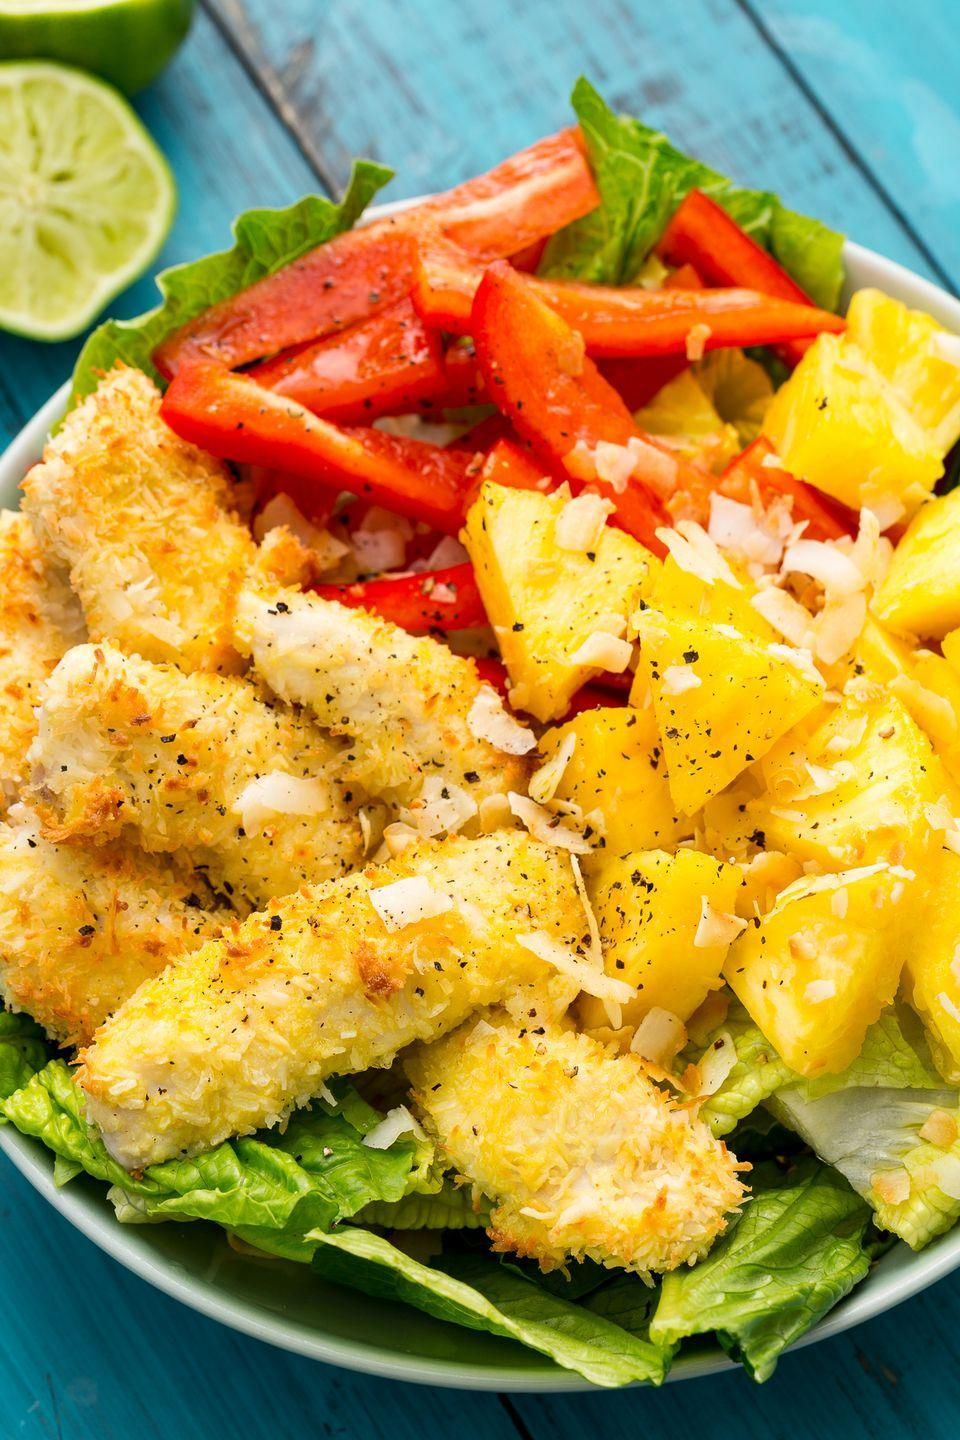 """<p>We're obsessed with the crunchy coconut chicken.</p><p>Get the recipe from <a href=""""https://www.delish.com/cooking/recipe-ideas/recipes/a47338/pina-colada-chicken-salad-recipe/"""" rel=""""nofollow noopener"""" target=""""_blank"""" data-ylk=""""slk:Delish"""" class=""""link rapid-noclick-resp"""">Delish</a>.</p>"""